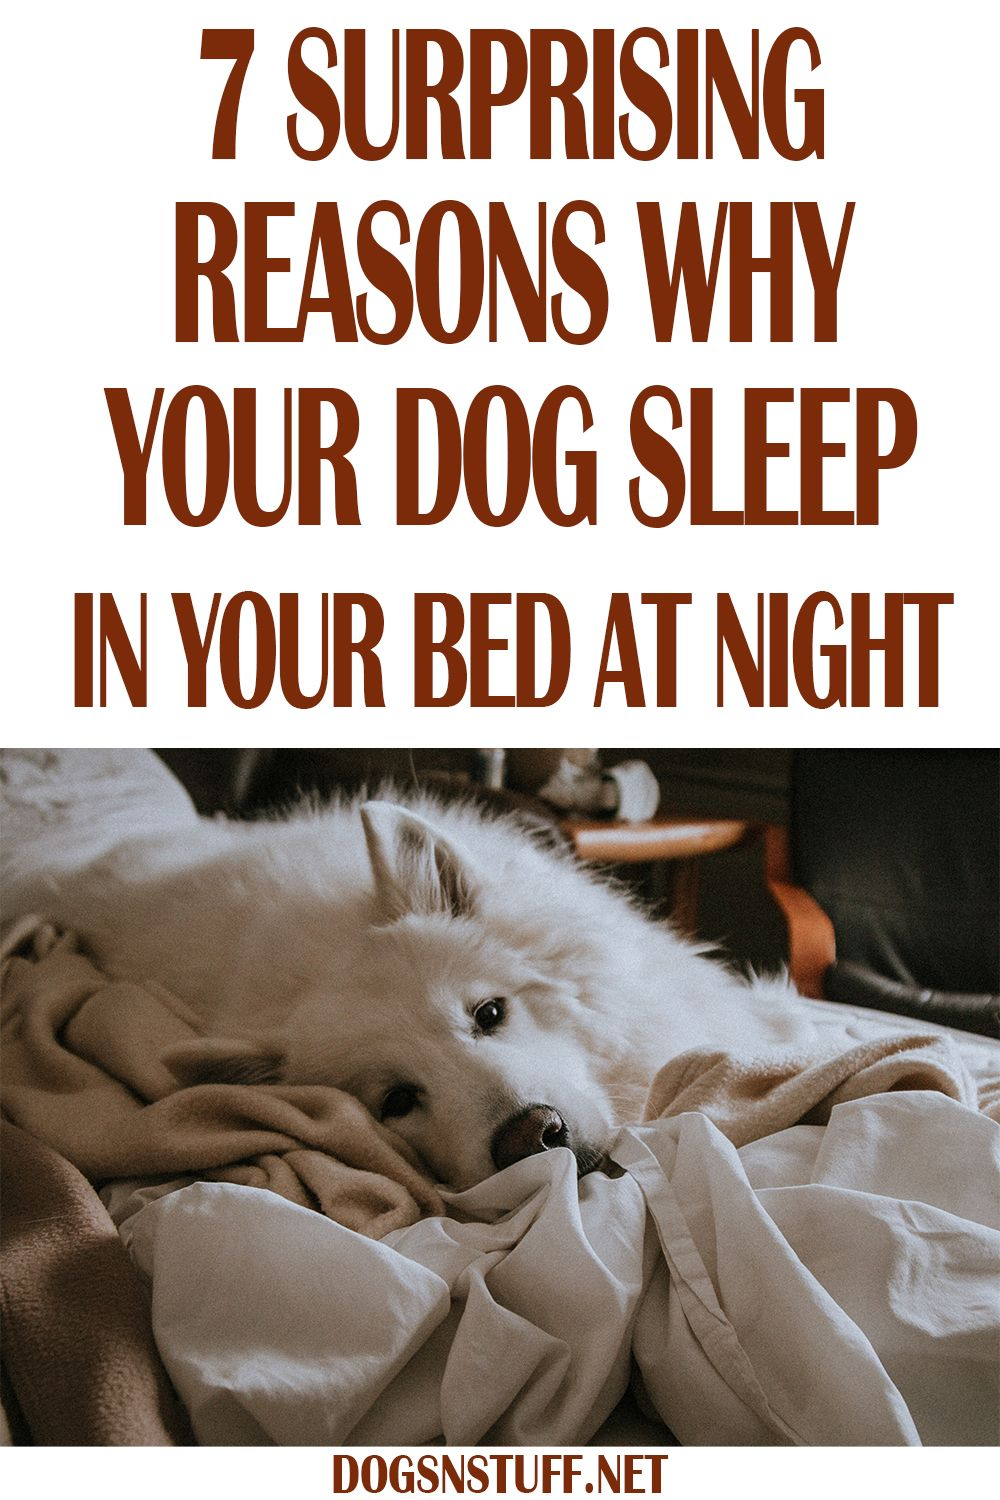 7 Amazing Reasons Why Your Dog Should Sleep In Your Bed At Night Dogs Sleeping Dogs Your Dog